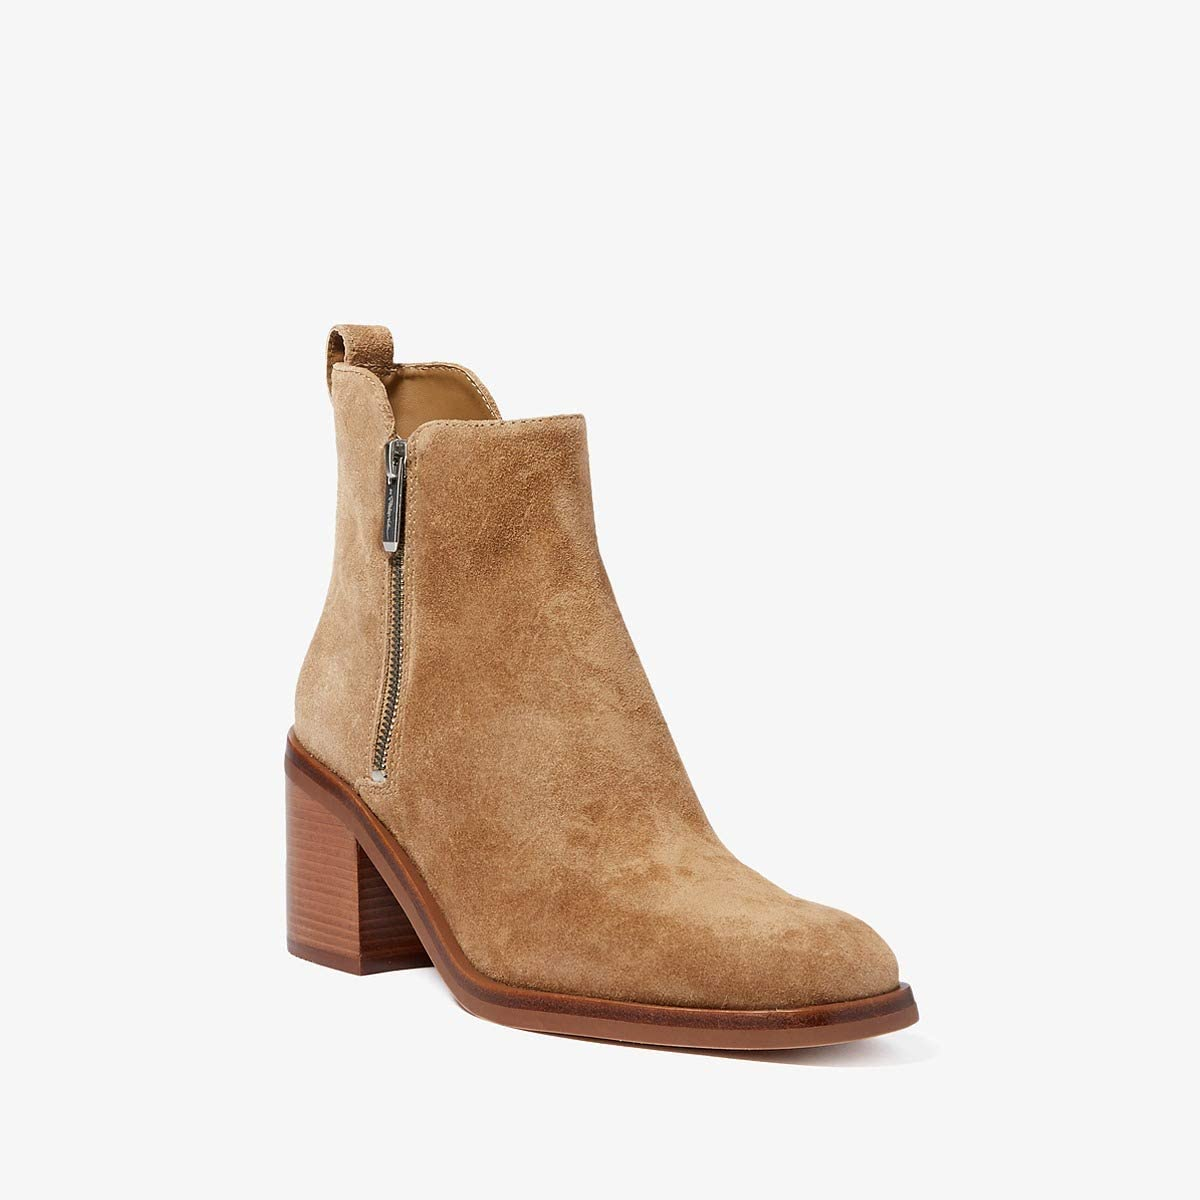 3.1 Phillip Lim Alexa 70mm Boot | Women's shoes | 2020 Newest